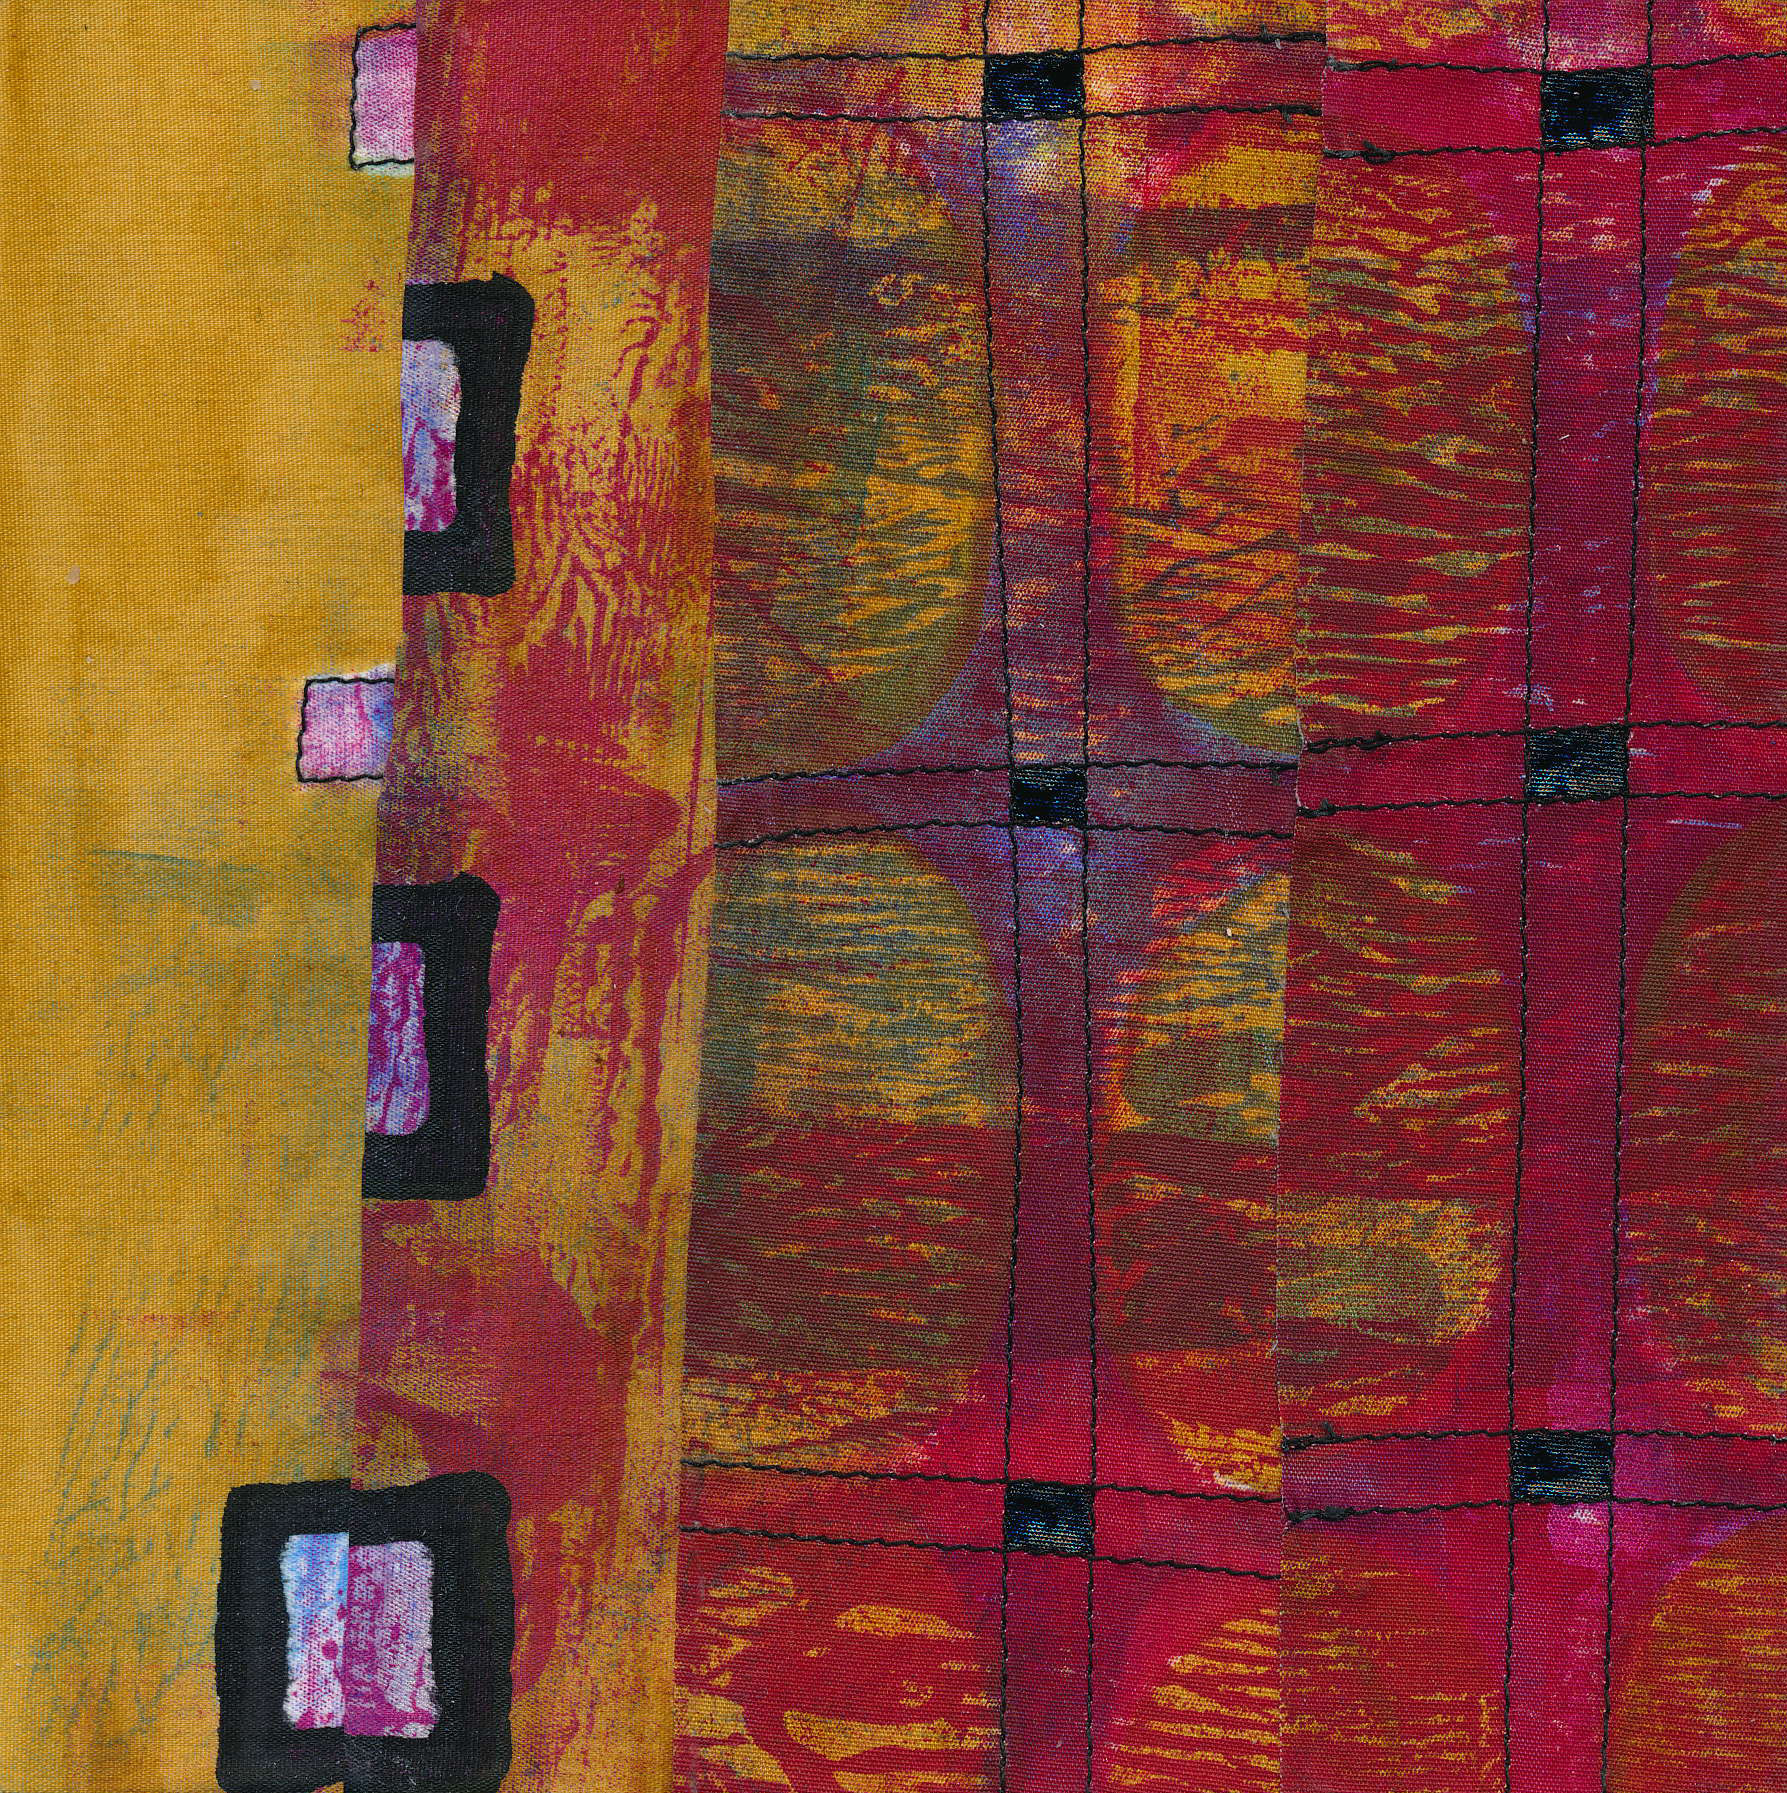 Jeanne Williamson,  Fragments from Ice on Fences #11 , mixed media on board, 6x6